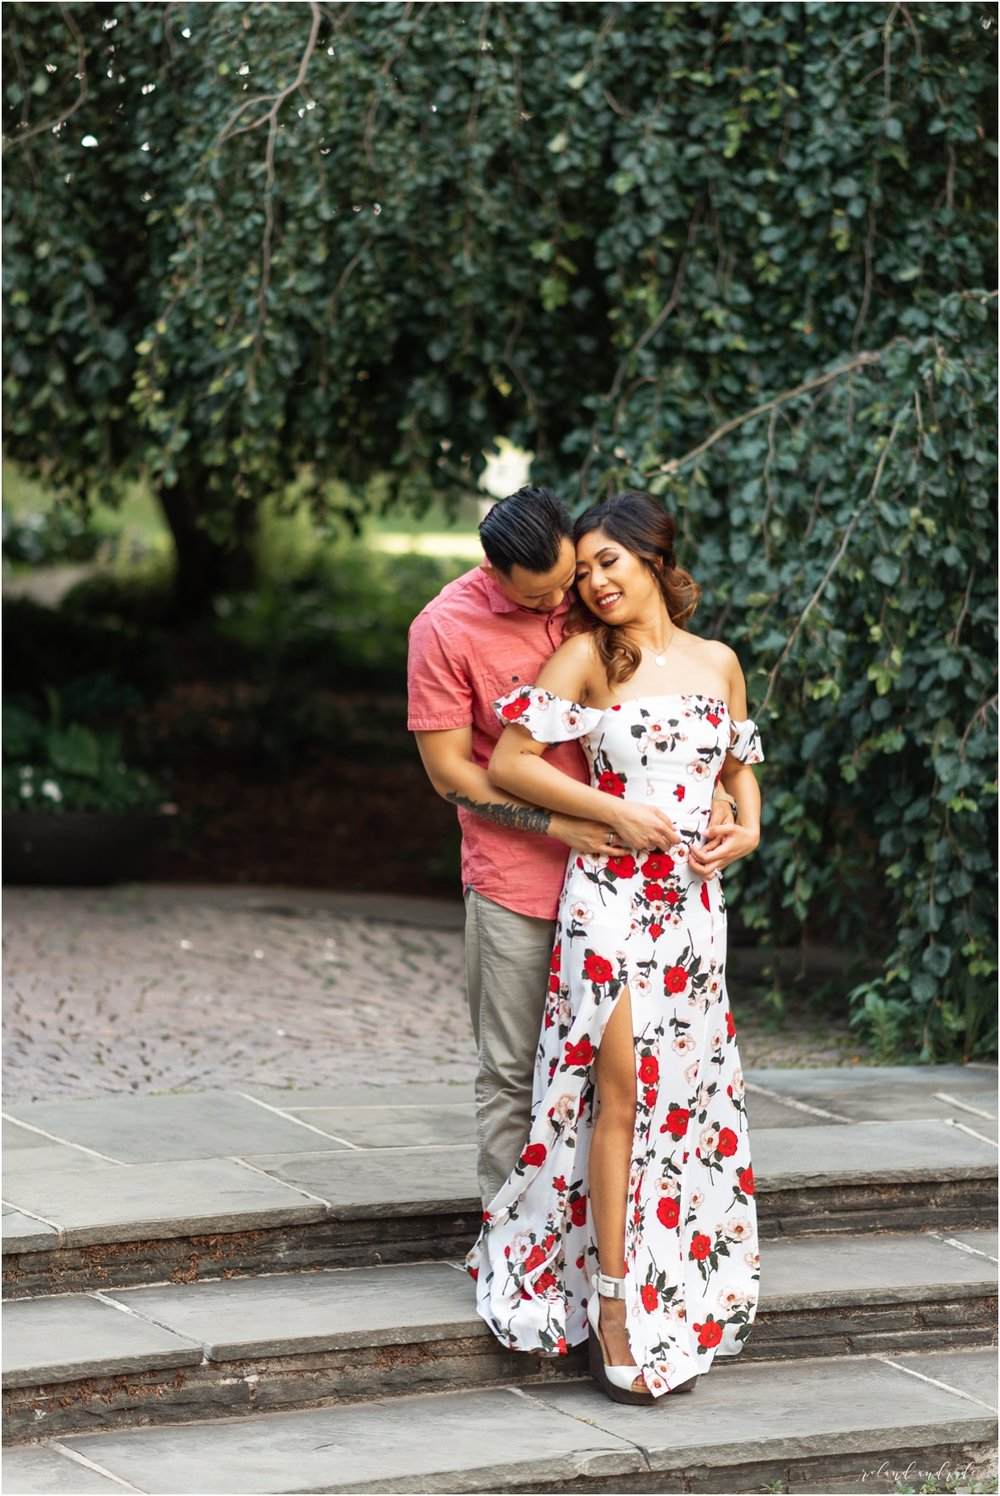 Cantigny Park Engagement Session, Wheaton Illinois Engagement Session, Chicago Wedding Photographer, Naperville Wedding Photographer, Aurora Wedding Photographer_0020.jpg